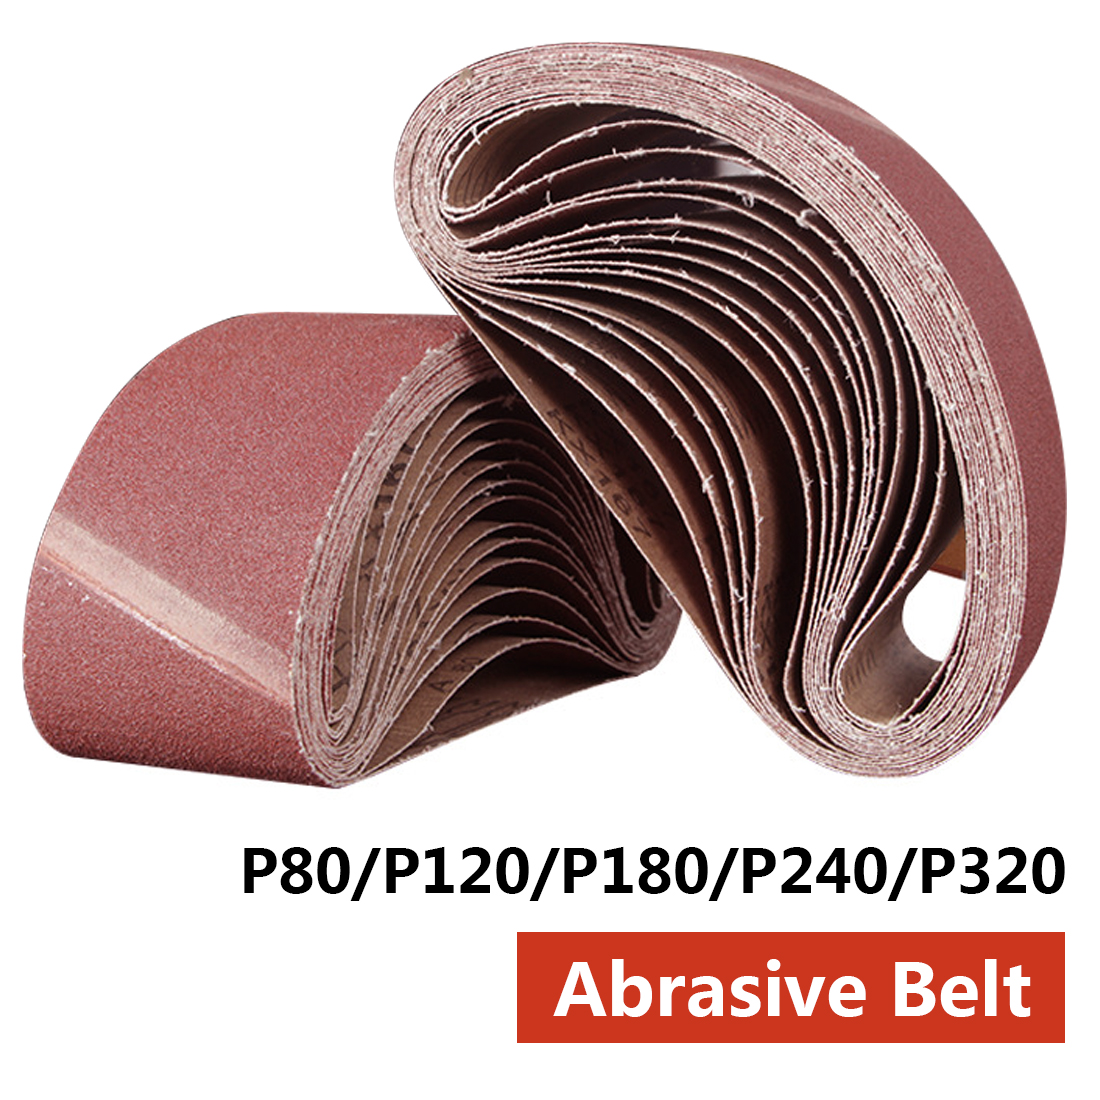 Tools Humor Sanding Belts 533x75mm 80-320 Grits Sandpaper Abrasive Bands For Sander Power Rotary Tools Dremel Accessories Abrasive Tool